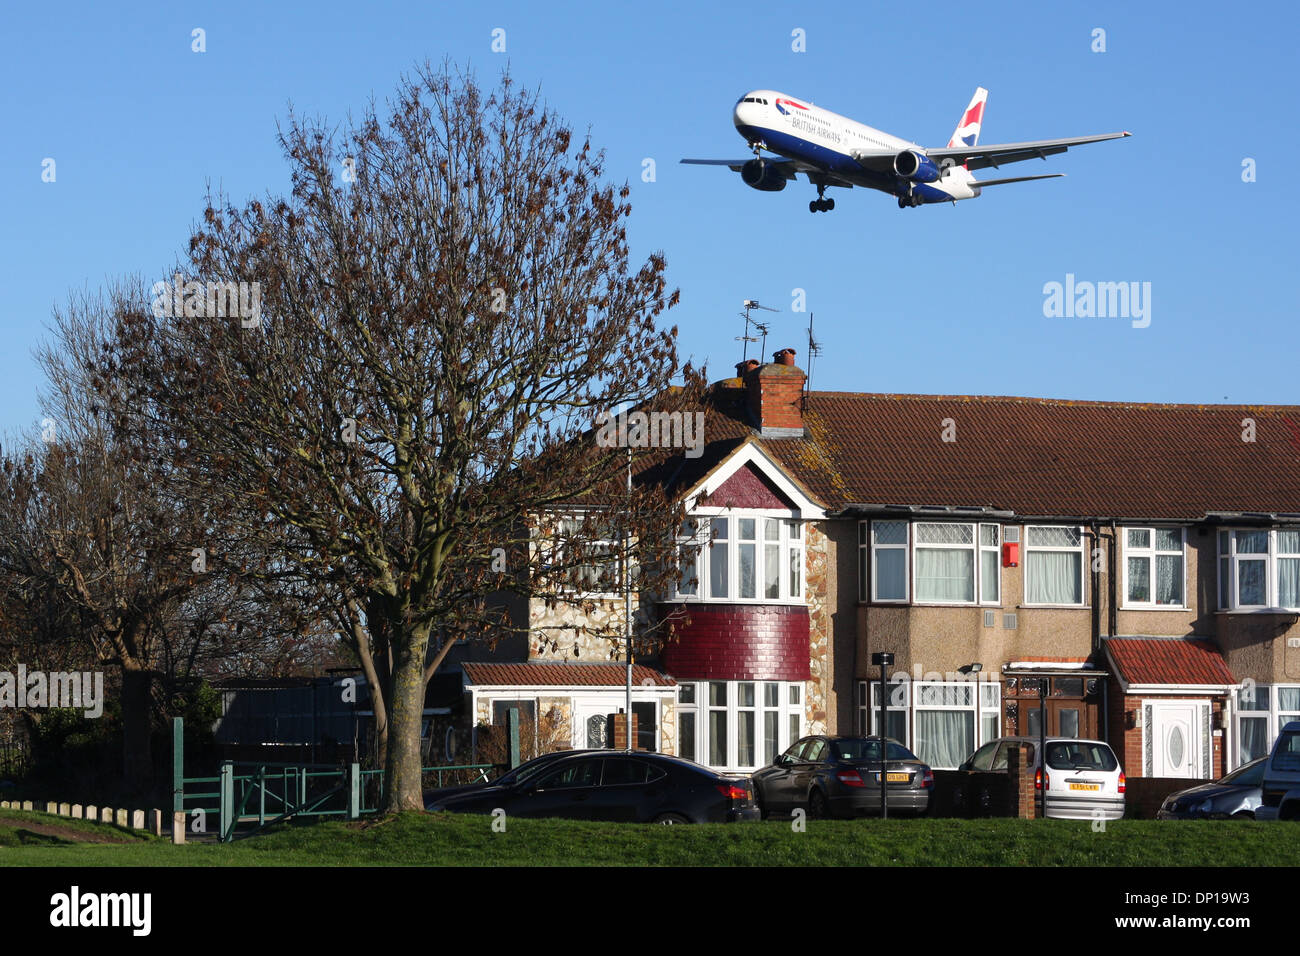 HOUSE PLANE AIRPORT NOISE - Stock Image